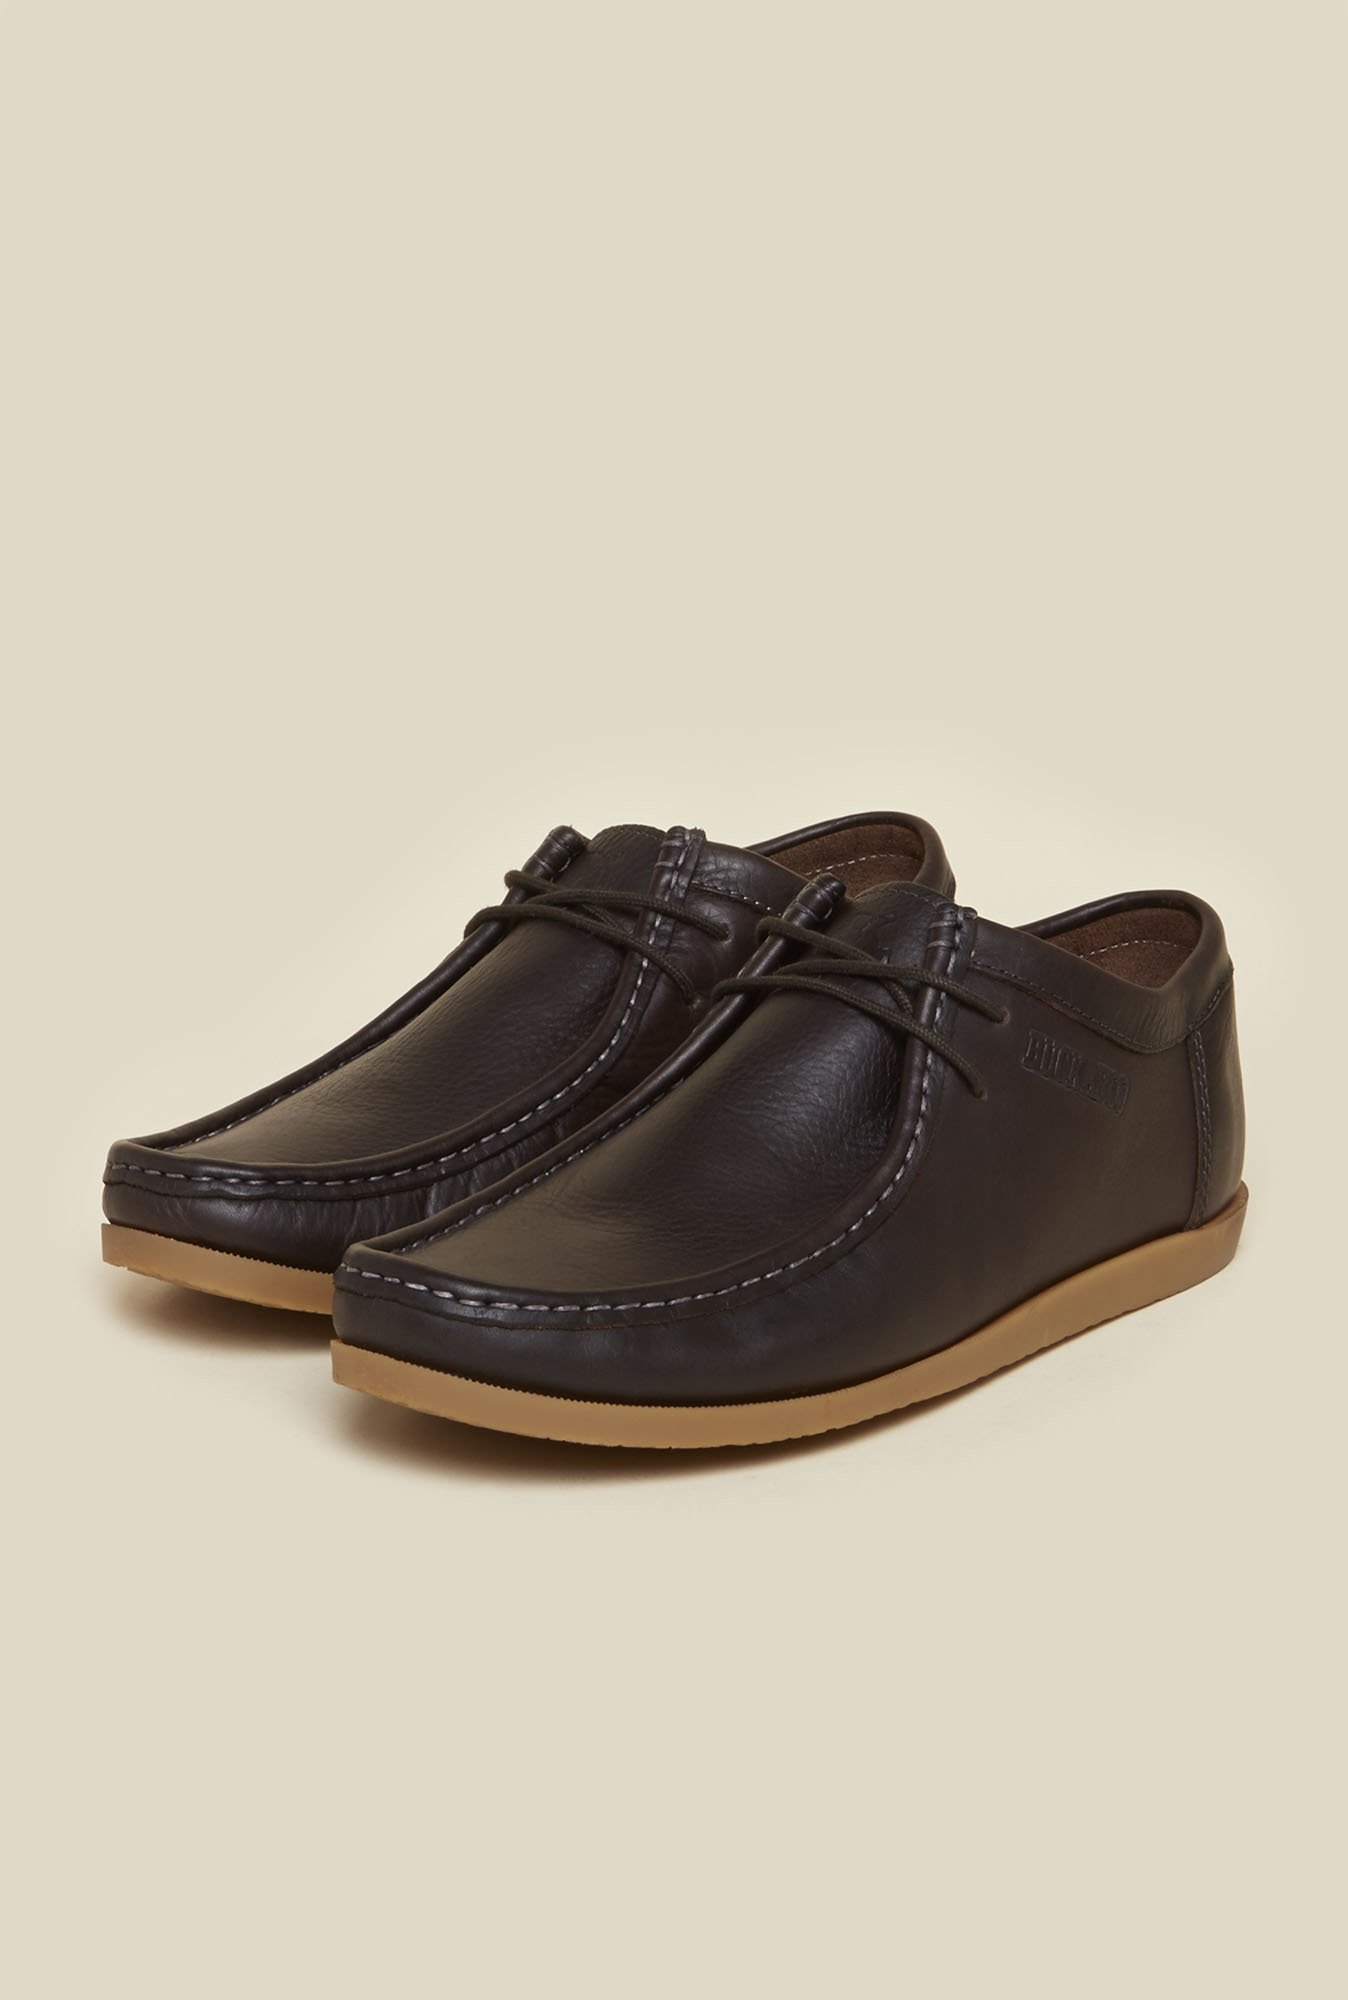 Buckaroo New Cory Brown Moccasins